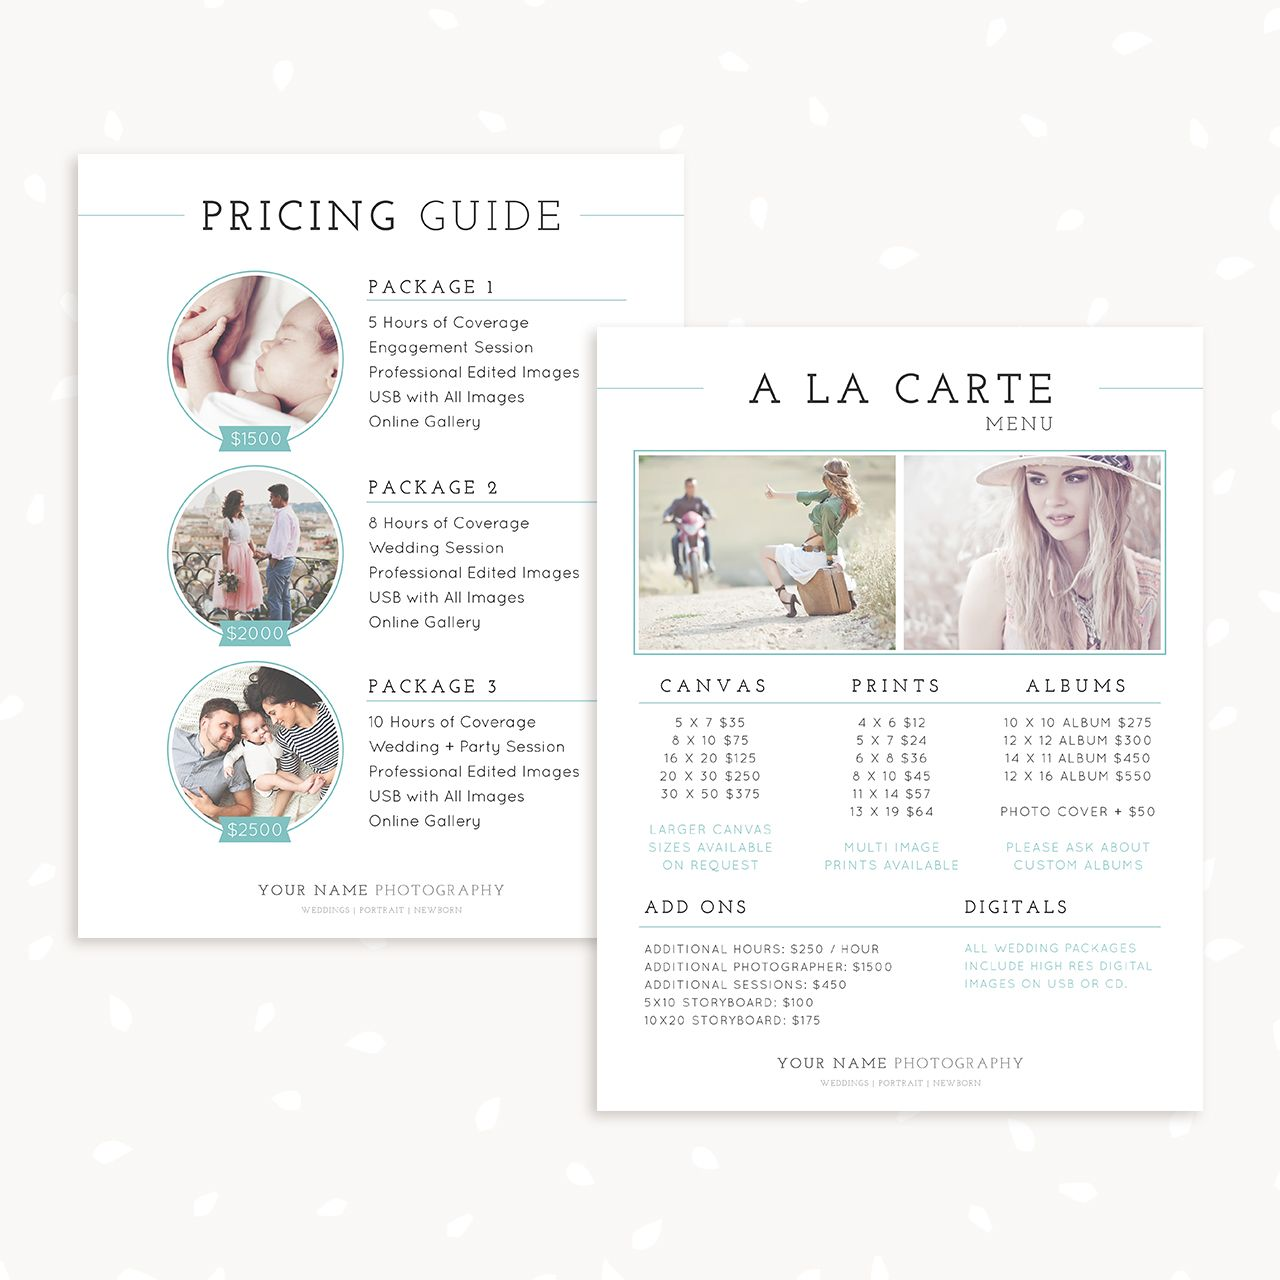 Classical Pricing Guide And A La Carte Menu Template Photography